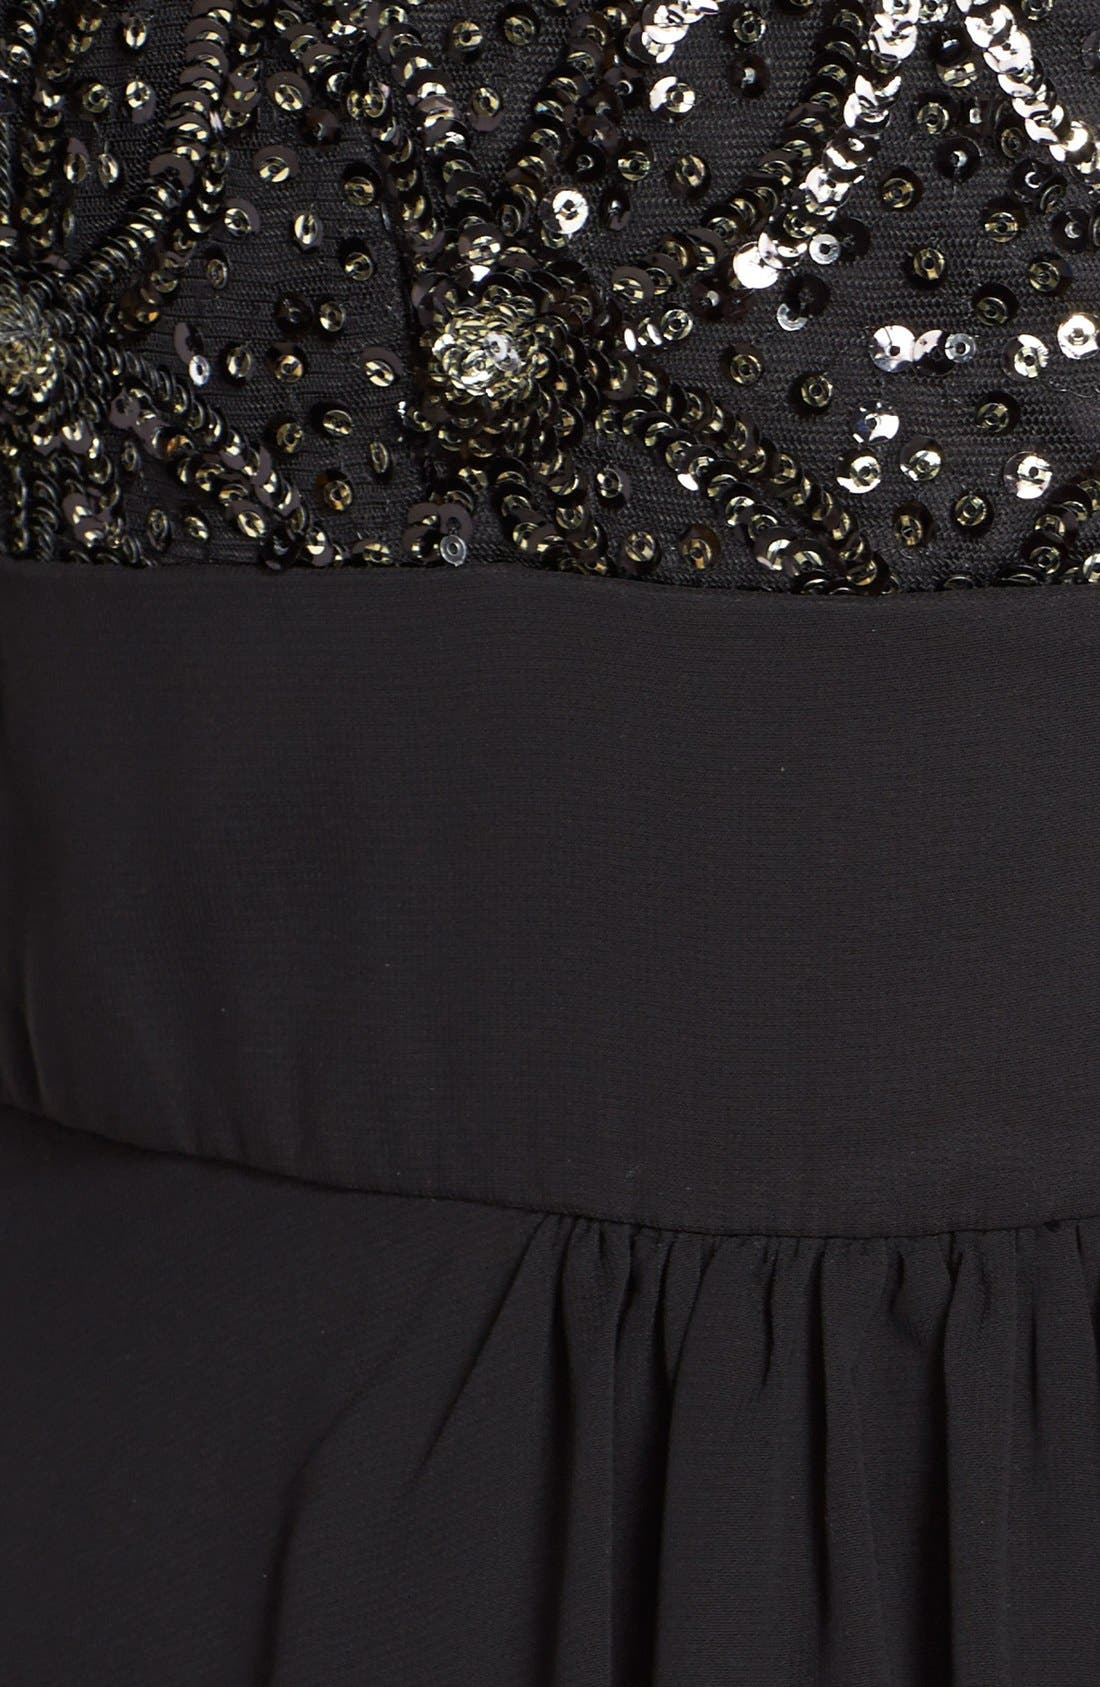 Embellished Tiered Chiffon Fit & Flare Gown,                             Alternate thumbnail 5, color,                             Black/ Grey